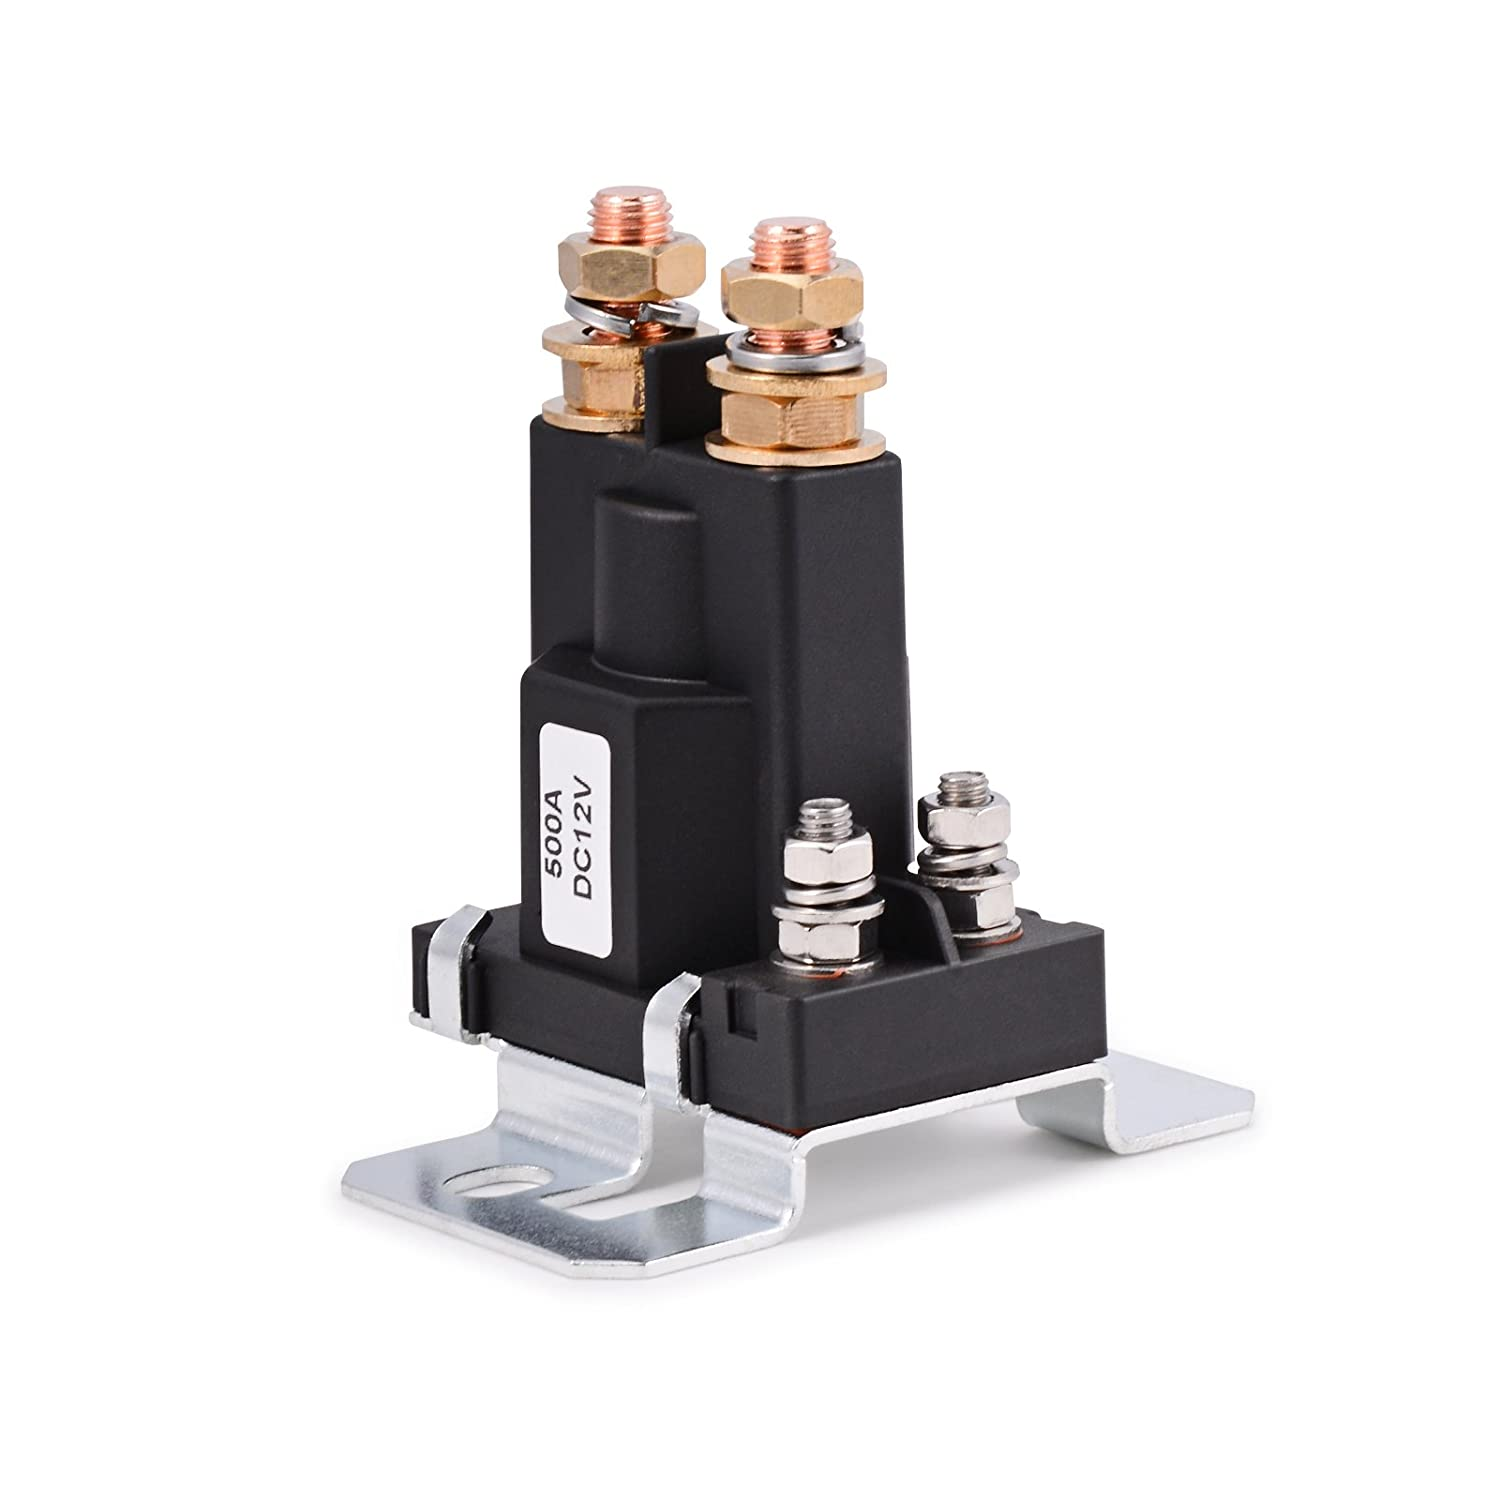 FOSHIO Heavy Duty 12VDC 500A AMP High Current 4Pin SPST Auto Car Start Relay Off On Control for Auto LED, Windowlish Wiper,Horn and Limo Turning